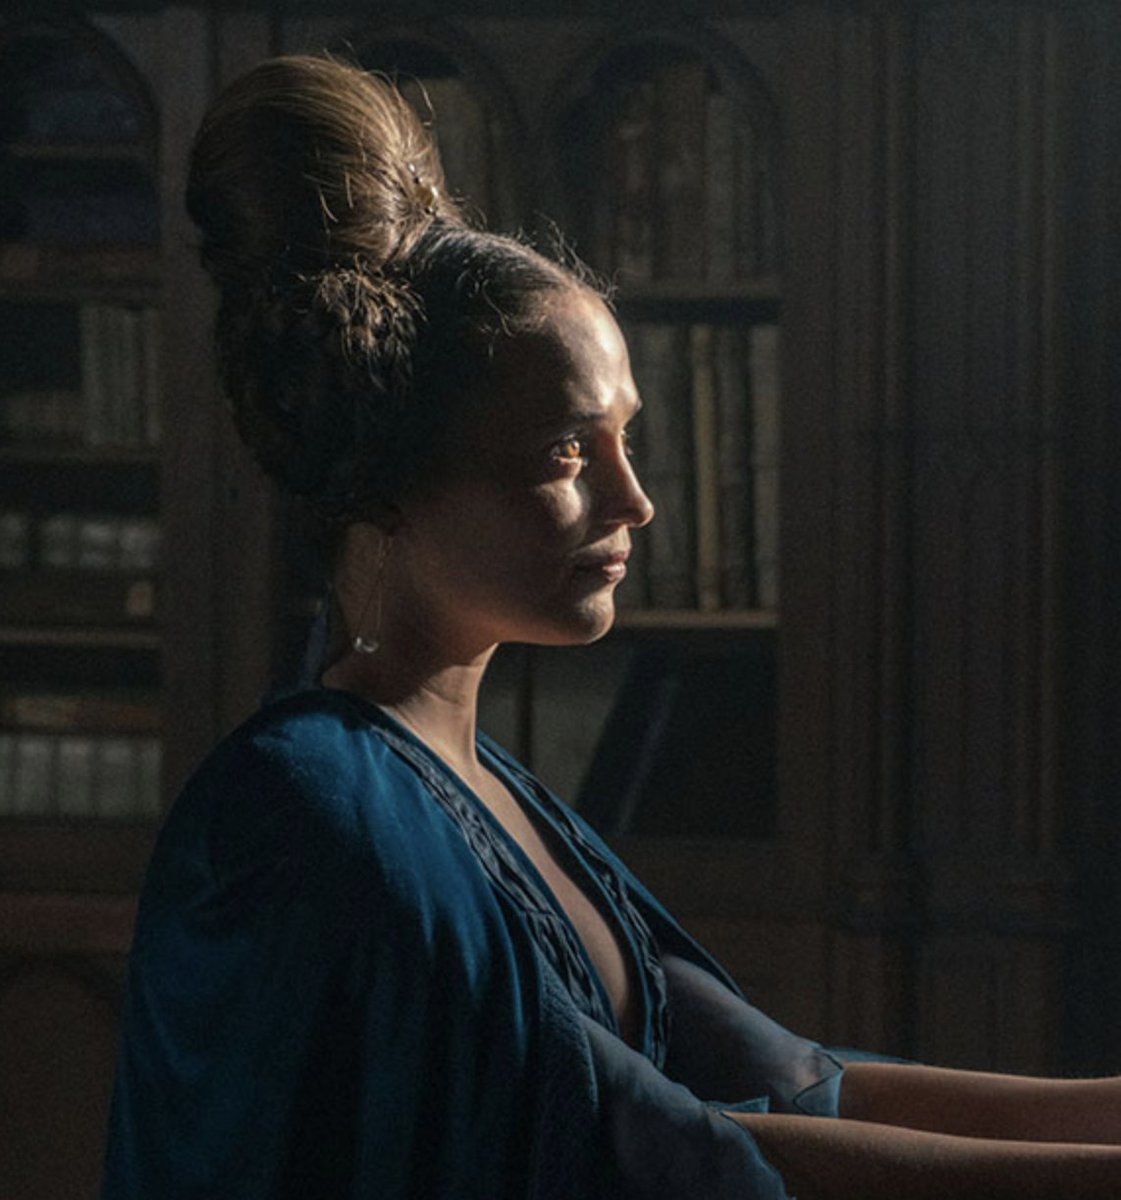 Alicia Vikander in Sir Gawain and the Green Knight, wearing teal velvet and sheers. Her hair is up in an intricate braided bouffant. Light is on one half of her face, her brown eyes are almost caramel.